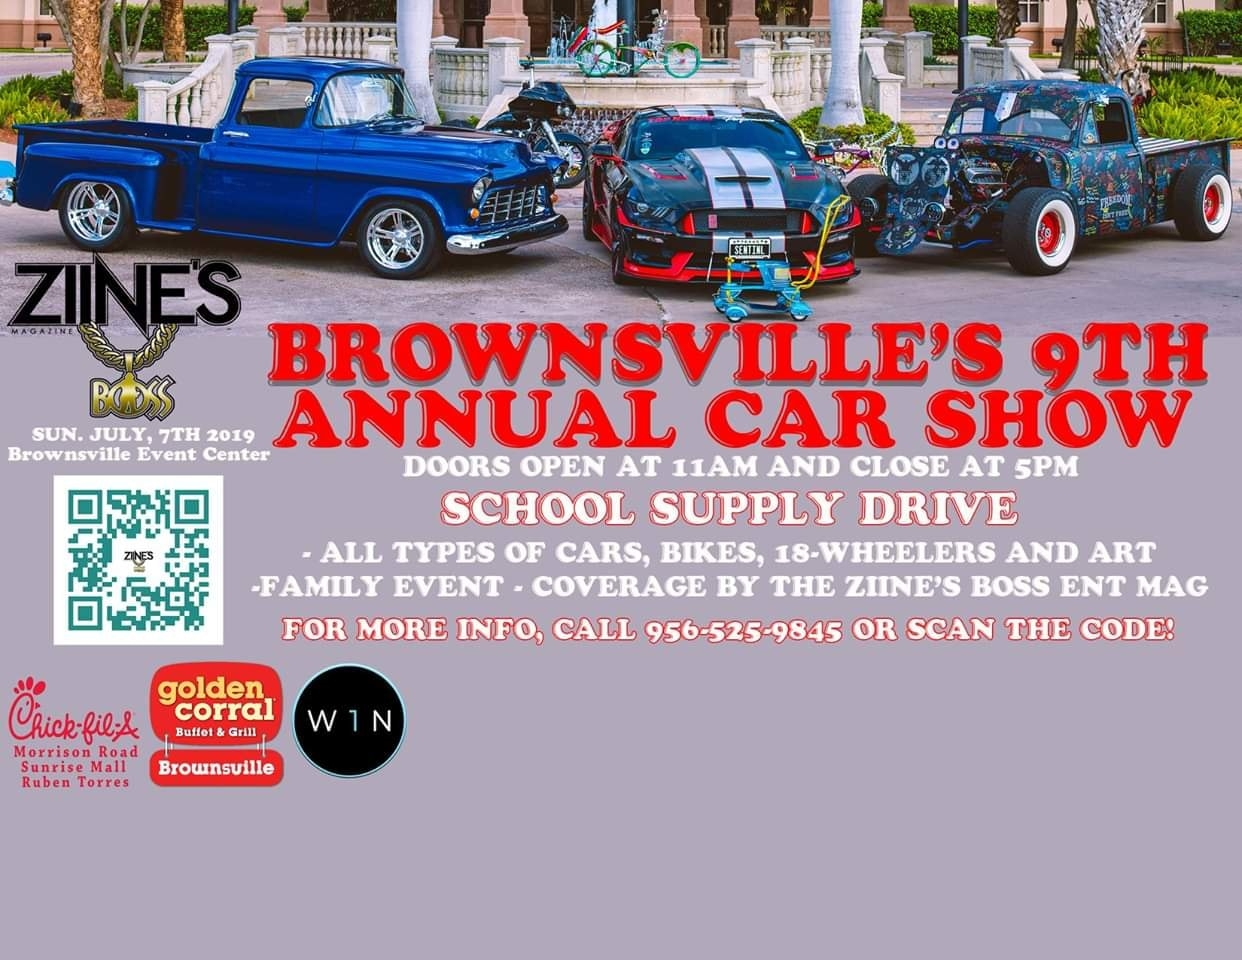 Brownsville's 9th Annual Car Show - Brownsville, Texas 78521